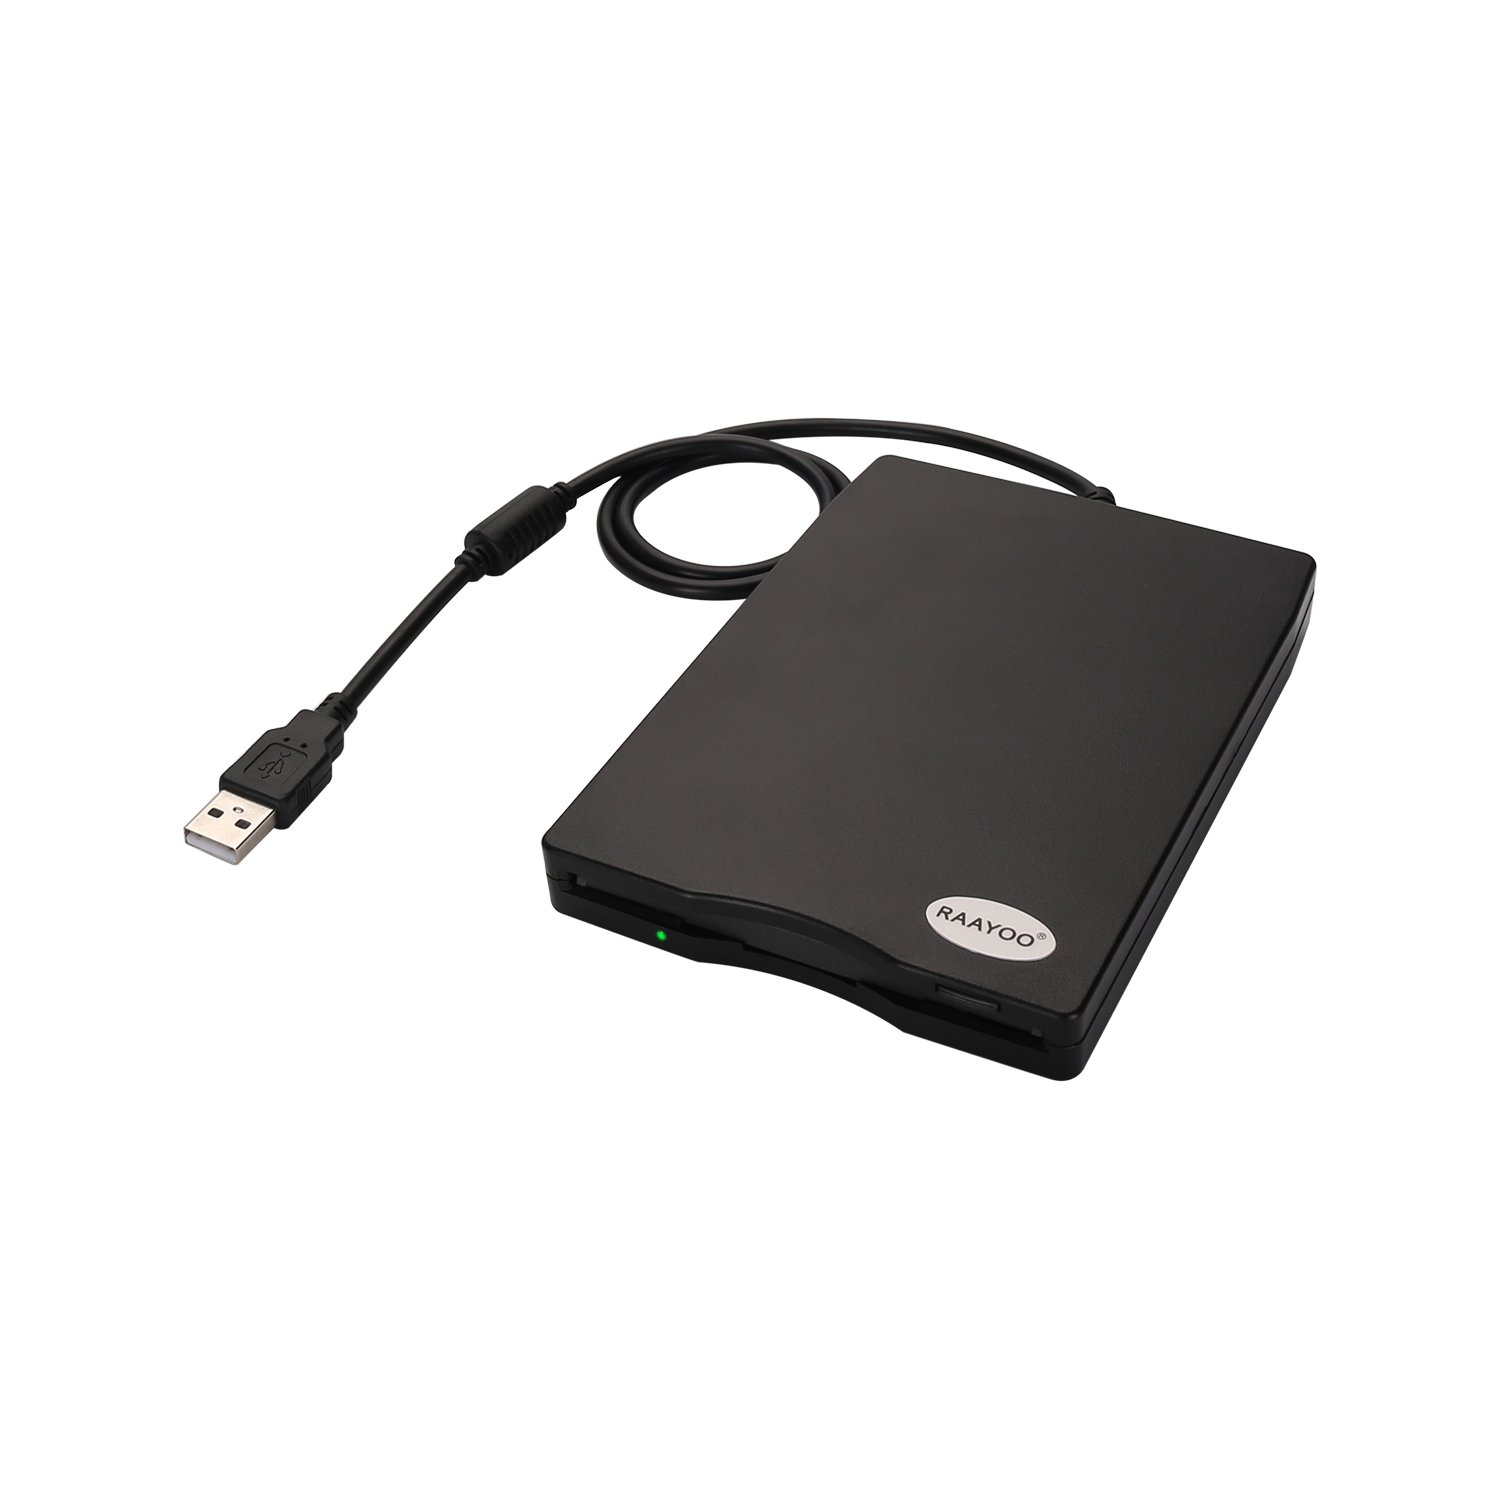 "RAAYOO USB Floppy Disk Reader Drive, 3.5"" External Portable 1.44 MB FDD Diskette Drive for Mac Windows 10/7/8/XP/Vista PC Laptop Desktop Notebook Computer Plug and Play No Extra Drivers– Black"